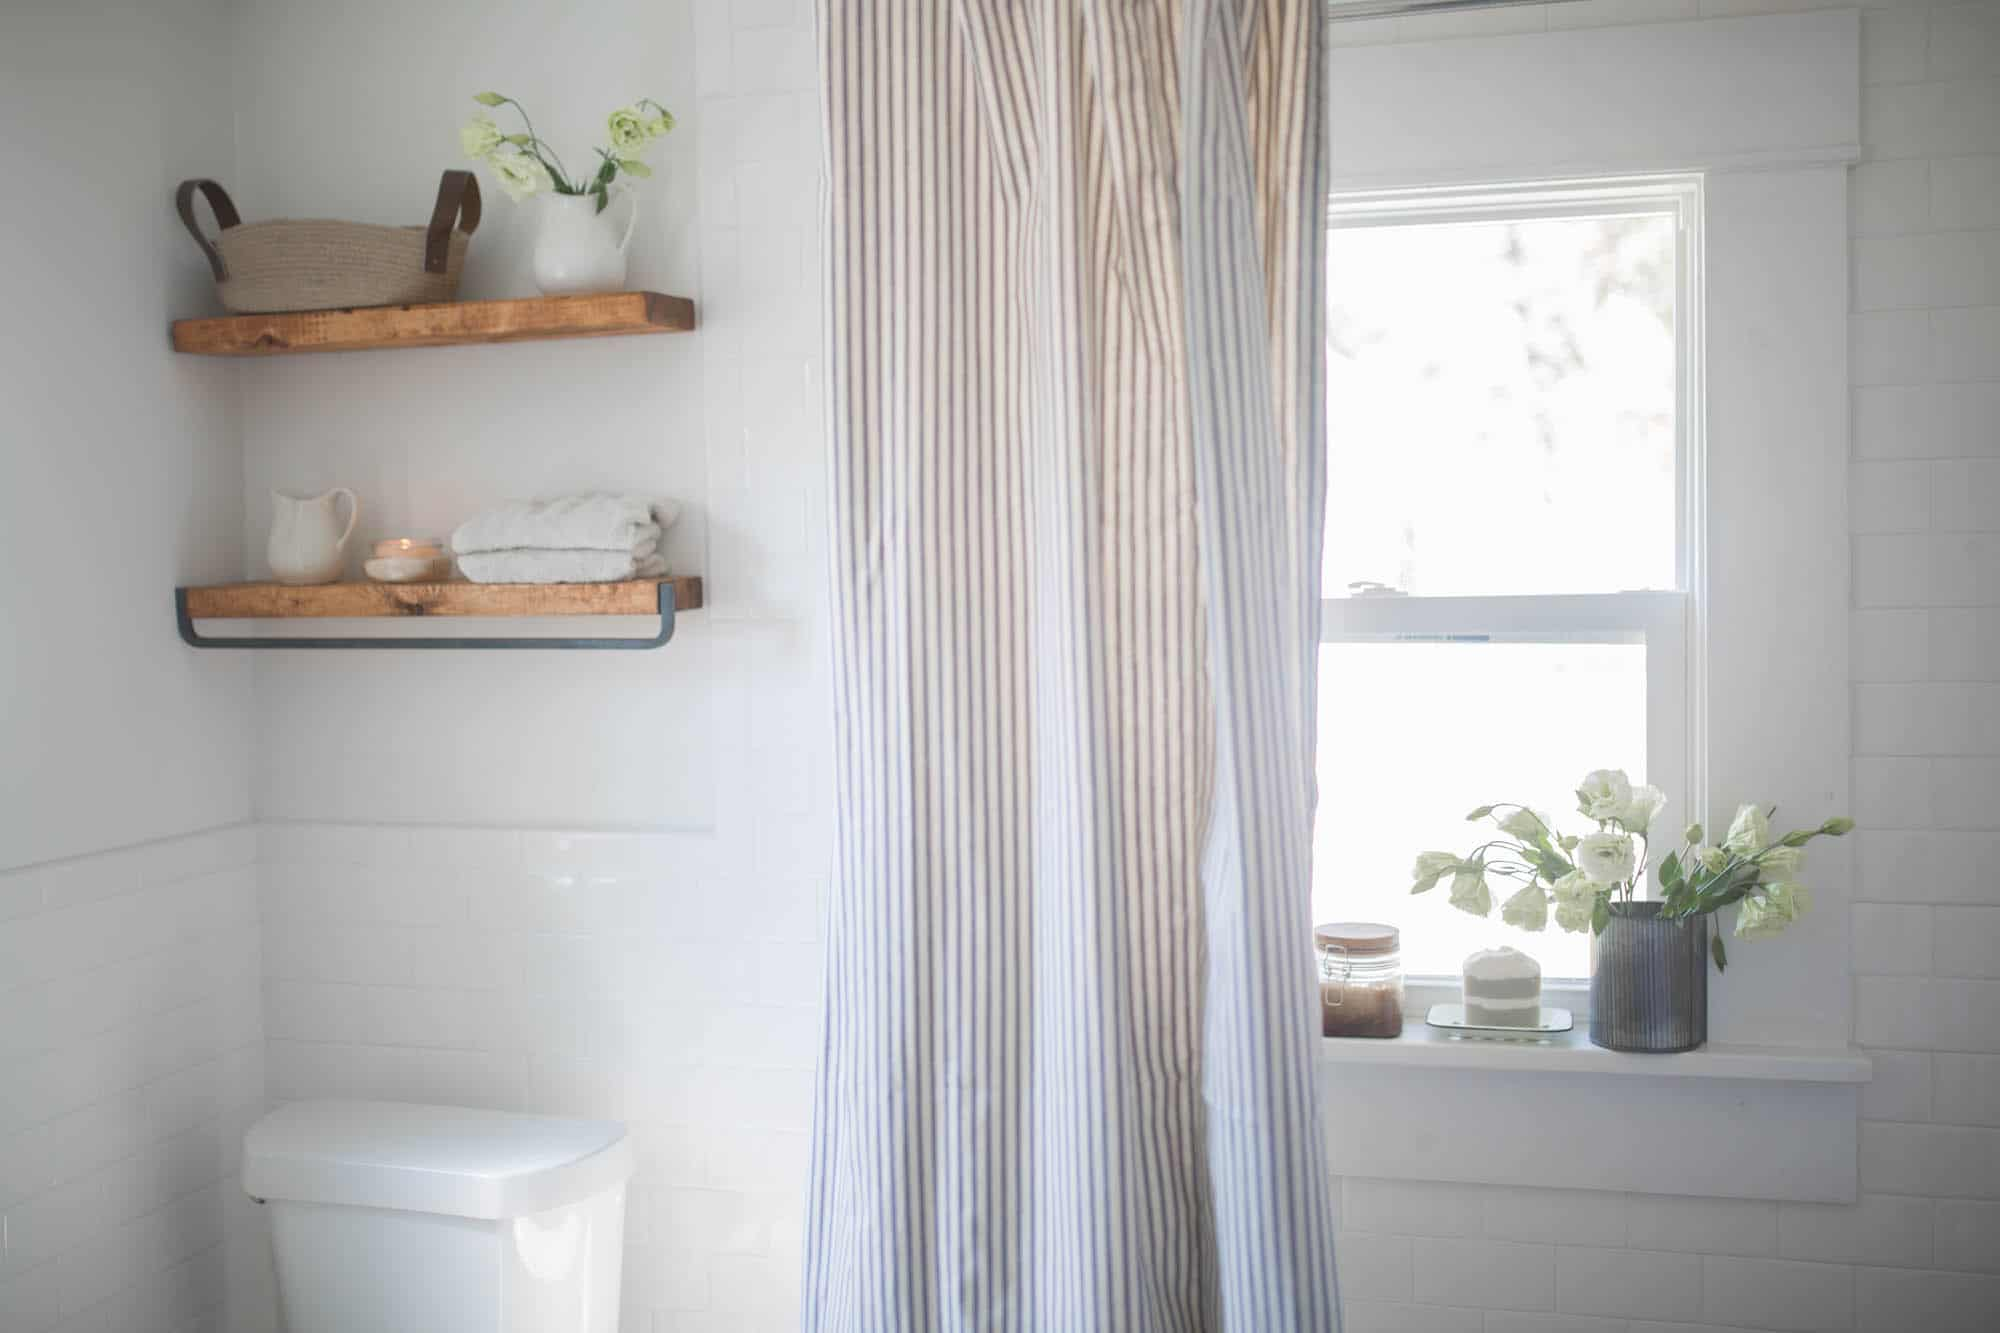 Farmhouse Bathroom Decor- Ticking Stripe Shower Curtain